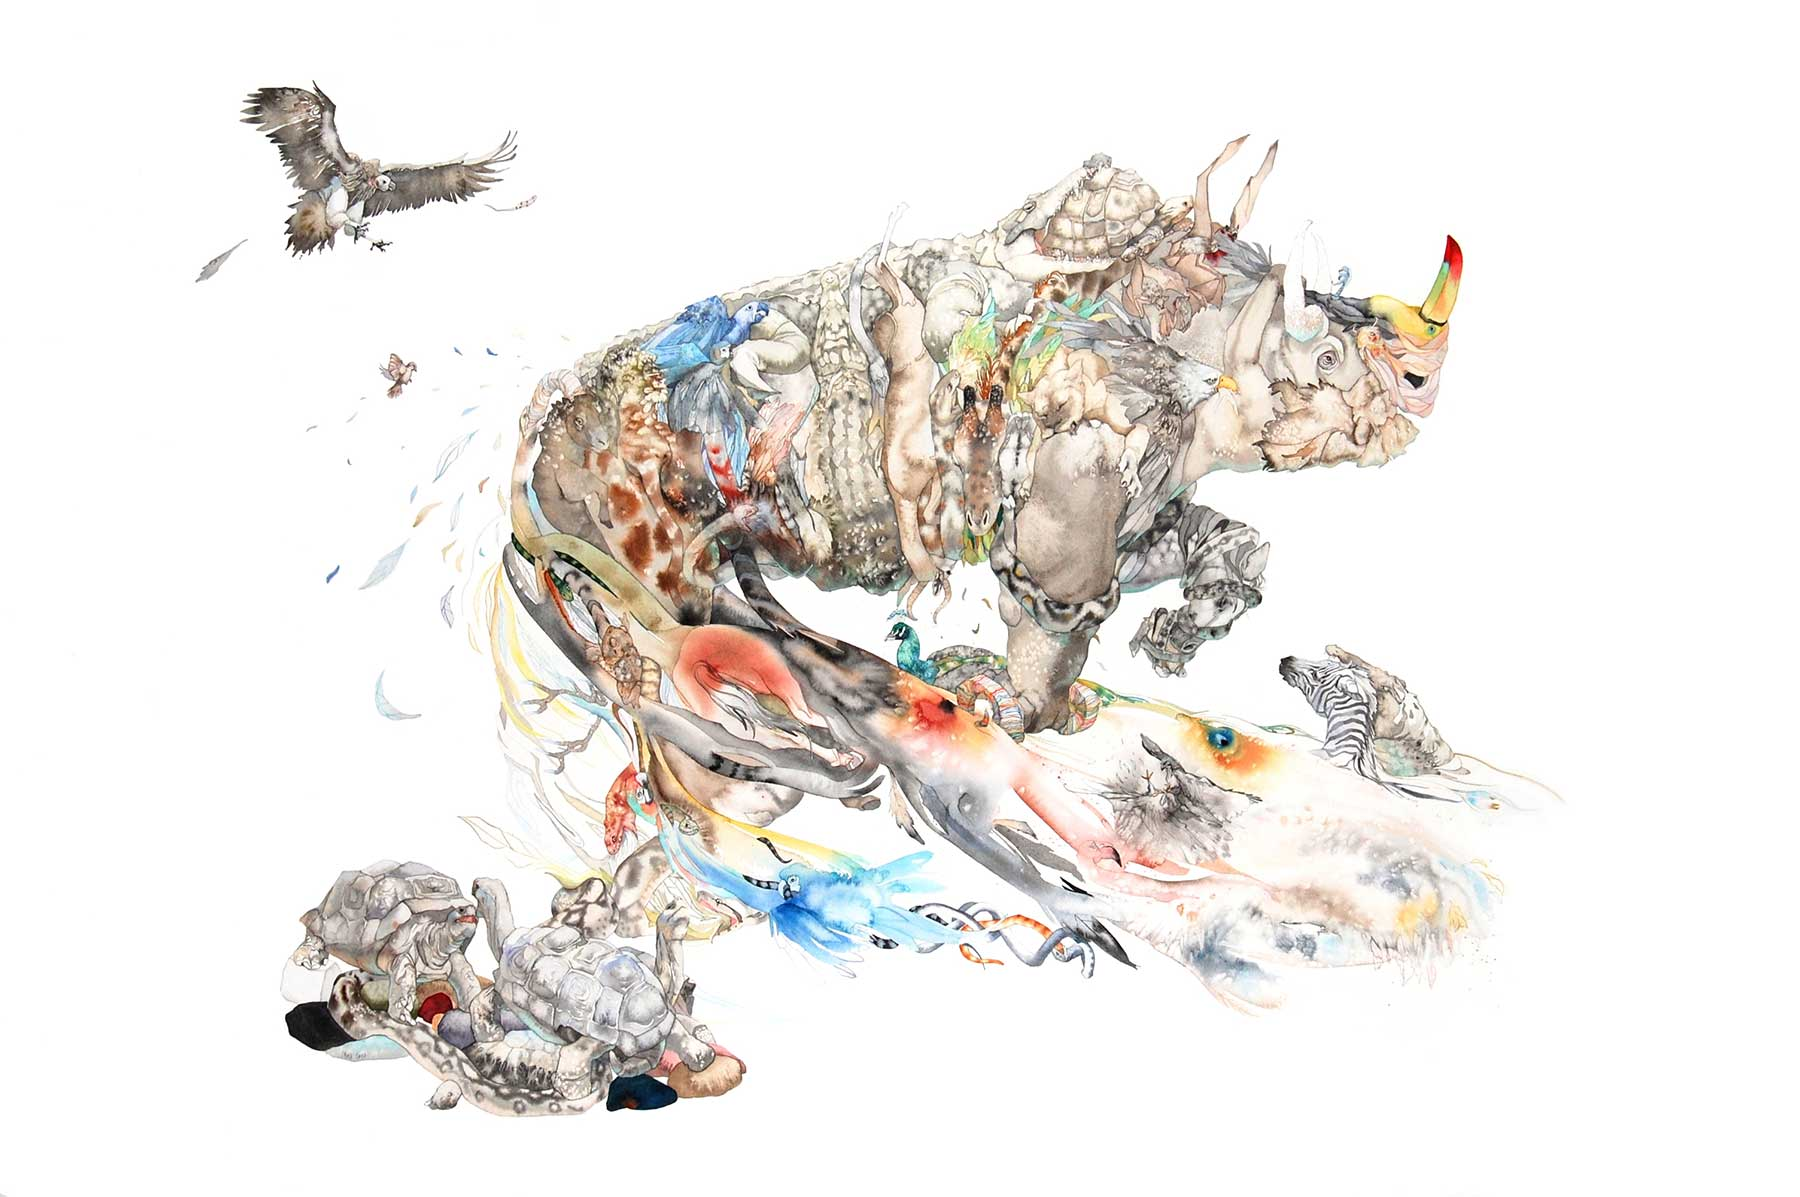 watercolor painting of rhinoceros and other wildlife